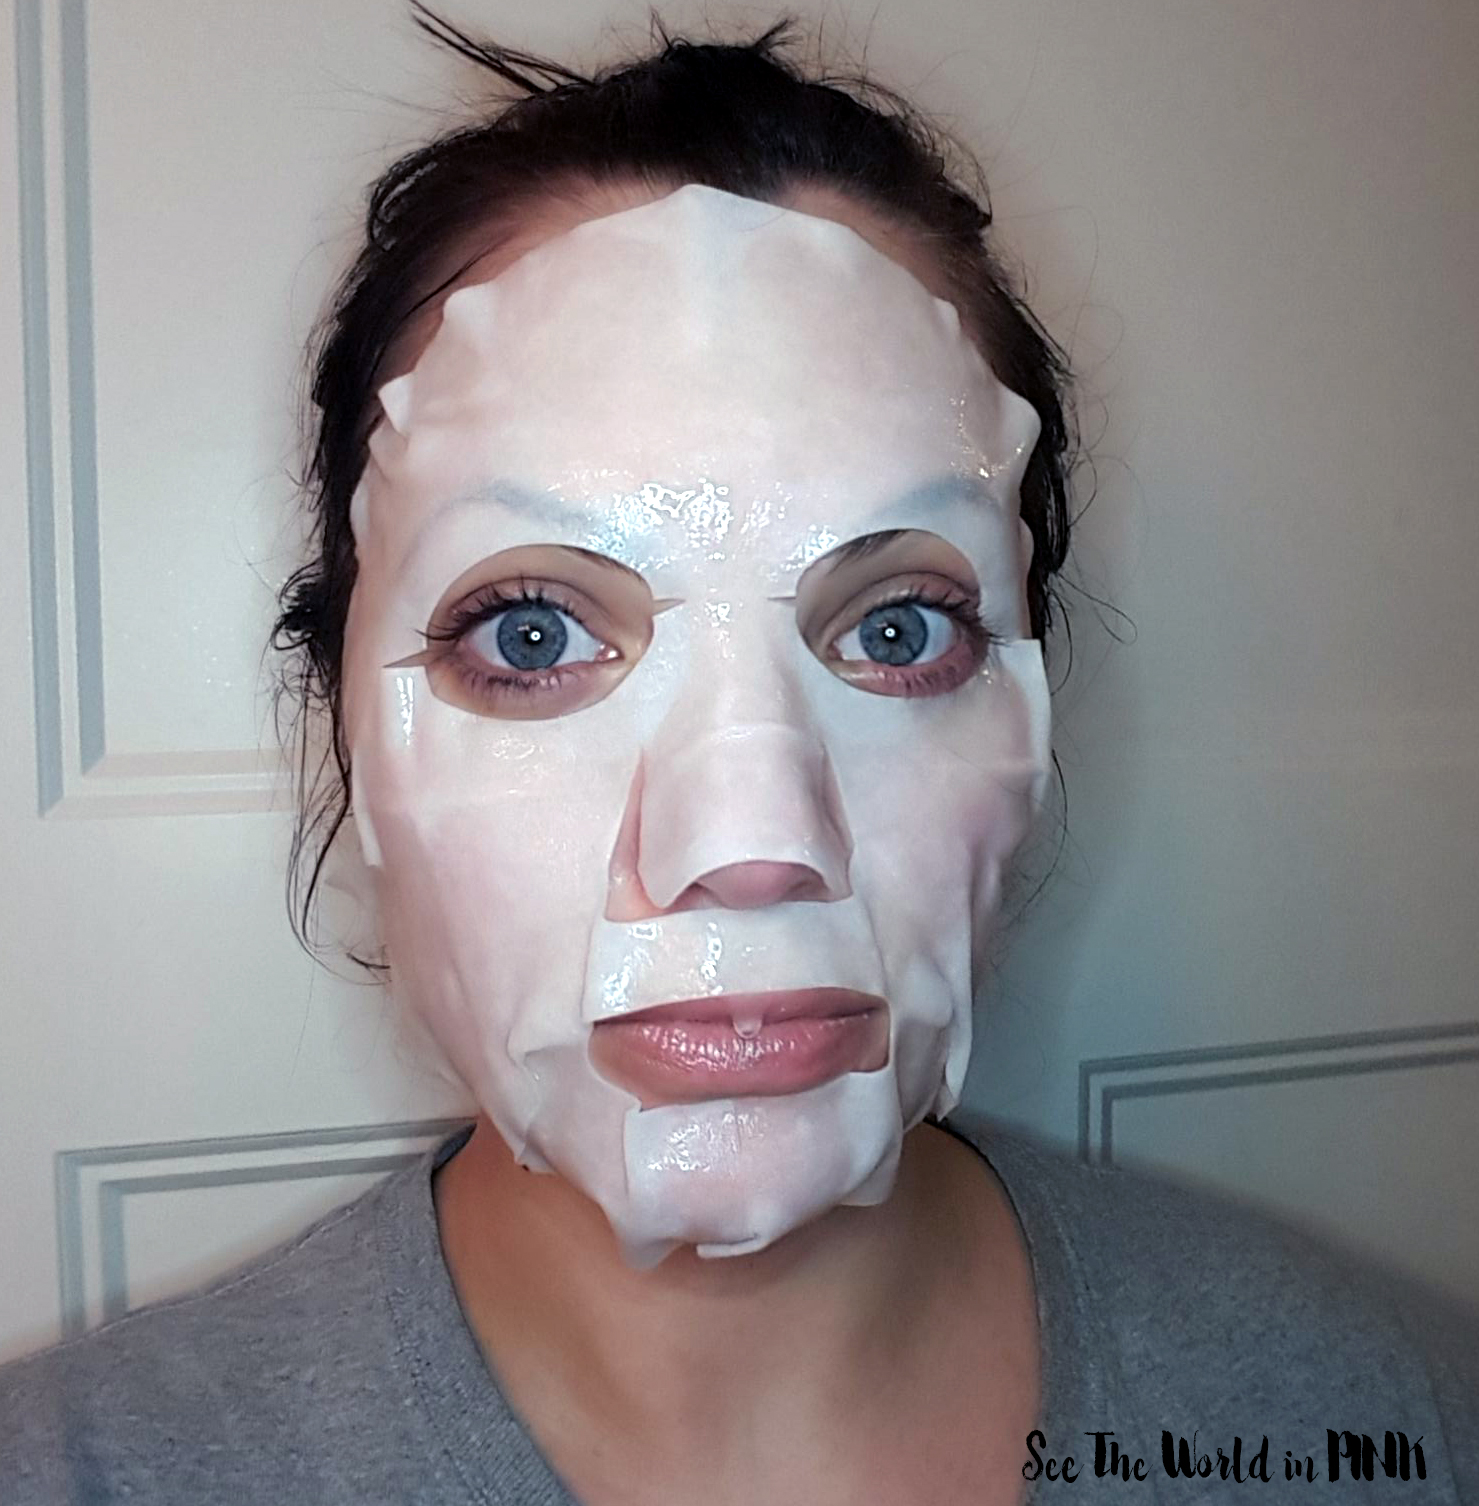 Skincare Sunday #CBBGetsSheetFaced Week Four Recap with Reviews - SKII Facial Treatment Mask